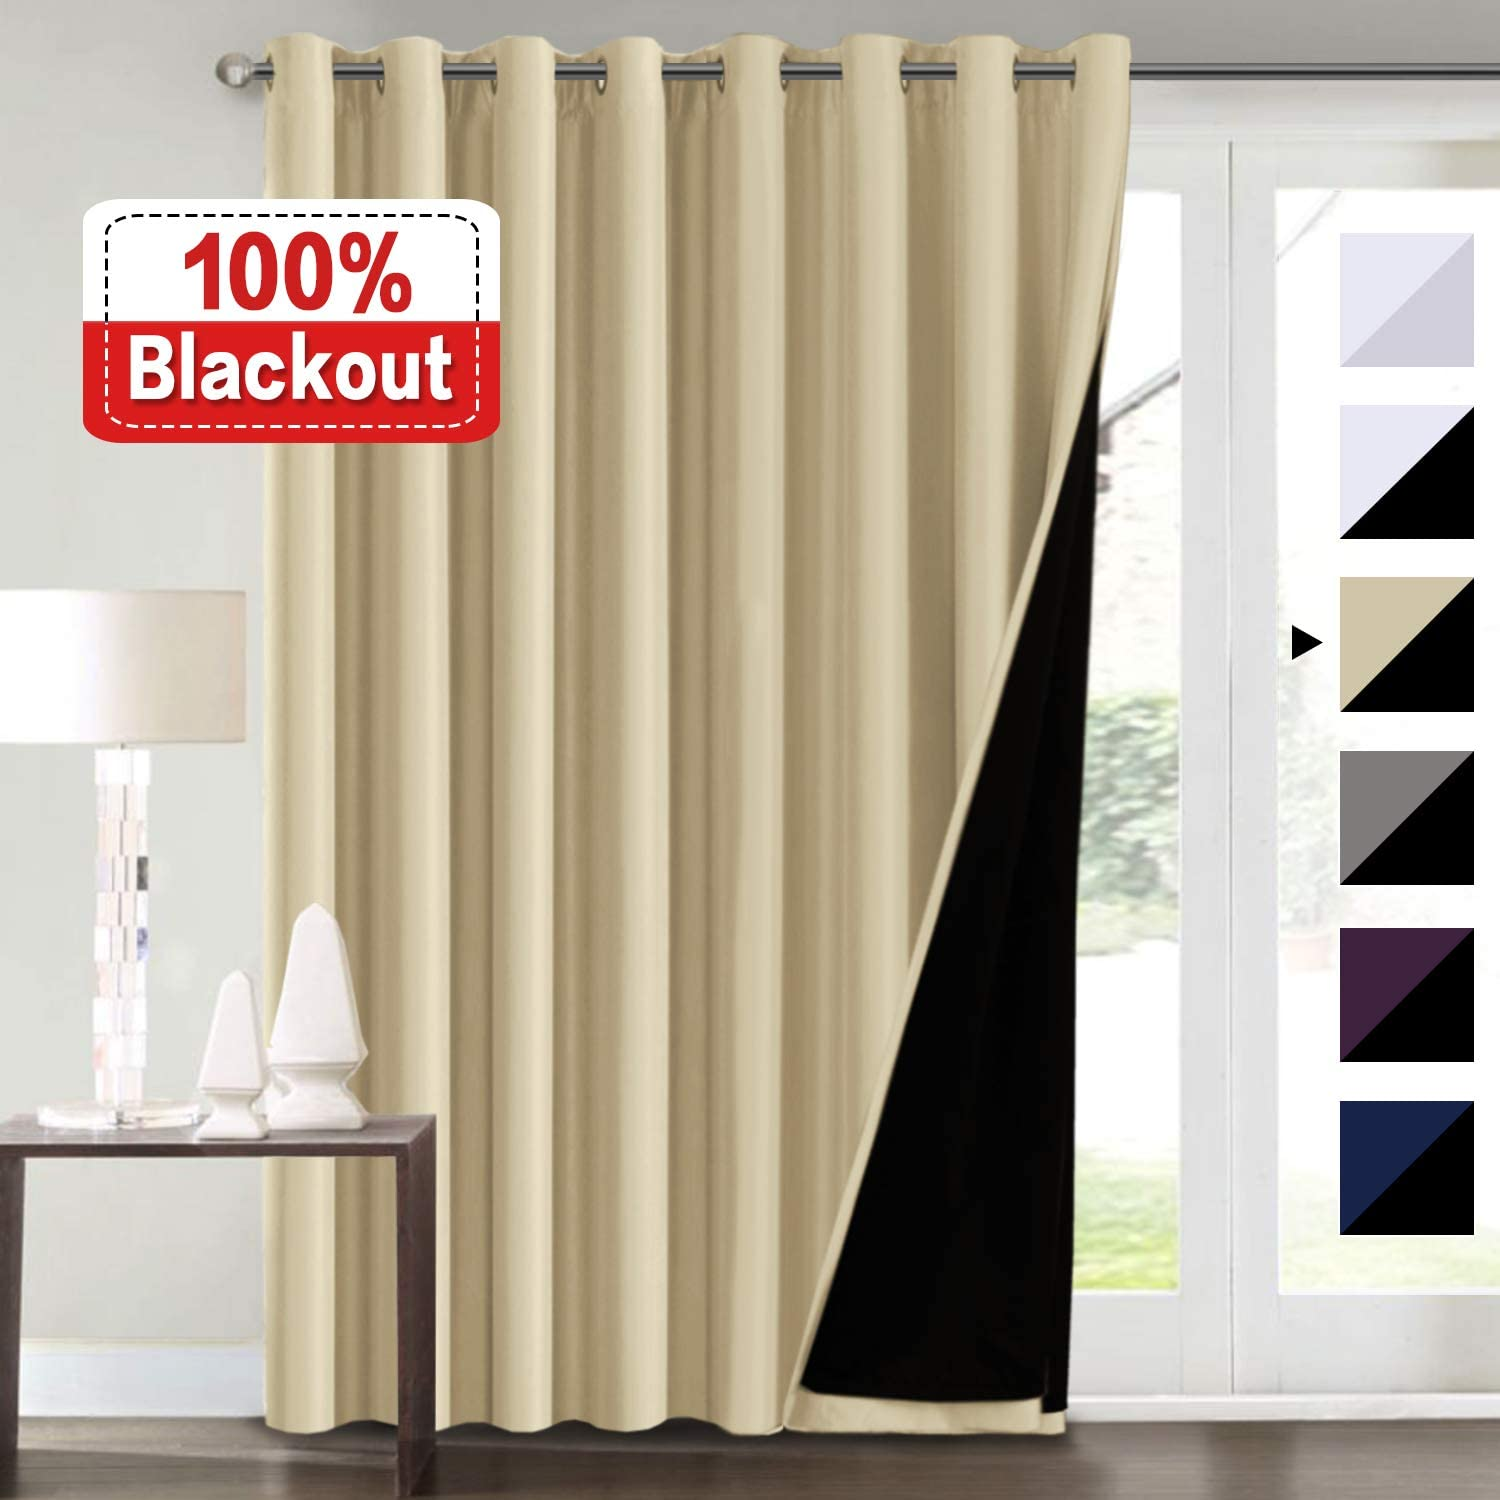 100% Blackout Curtains for Patio Sliding Door 100x96 Thermal Insulated & Energy Efficiency Draperies for Double Window, Extra Wide Blackout Curtains for Bedroom, Wheat